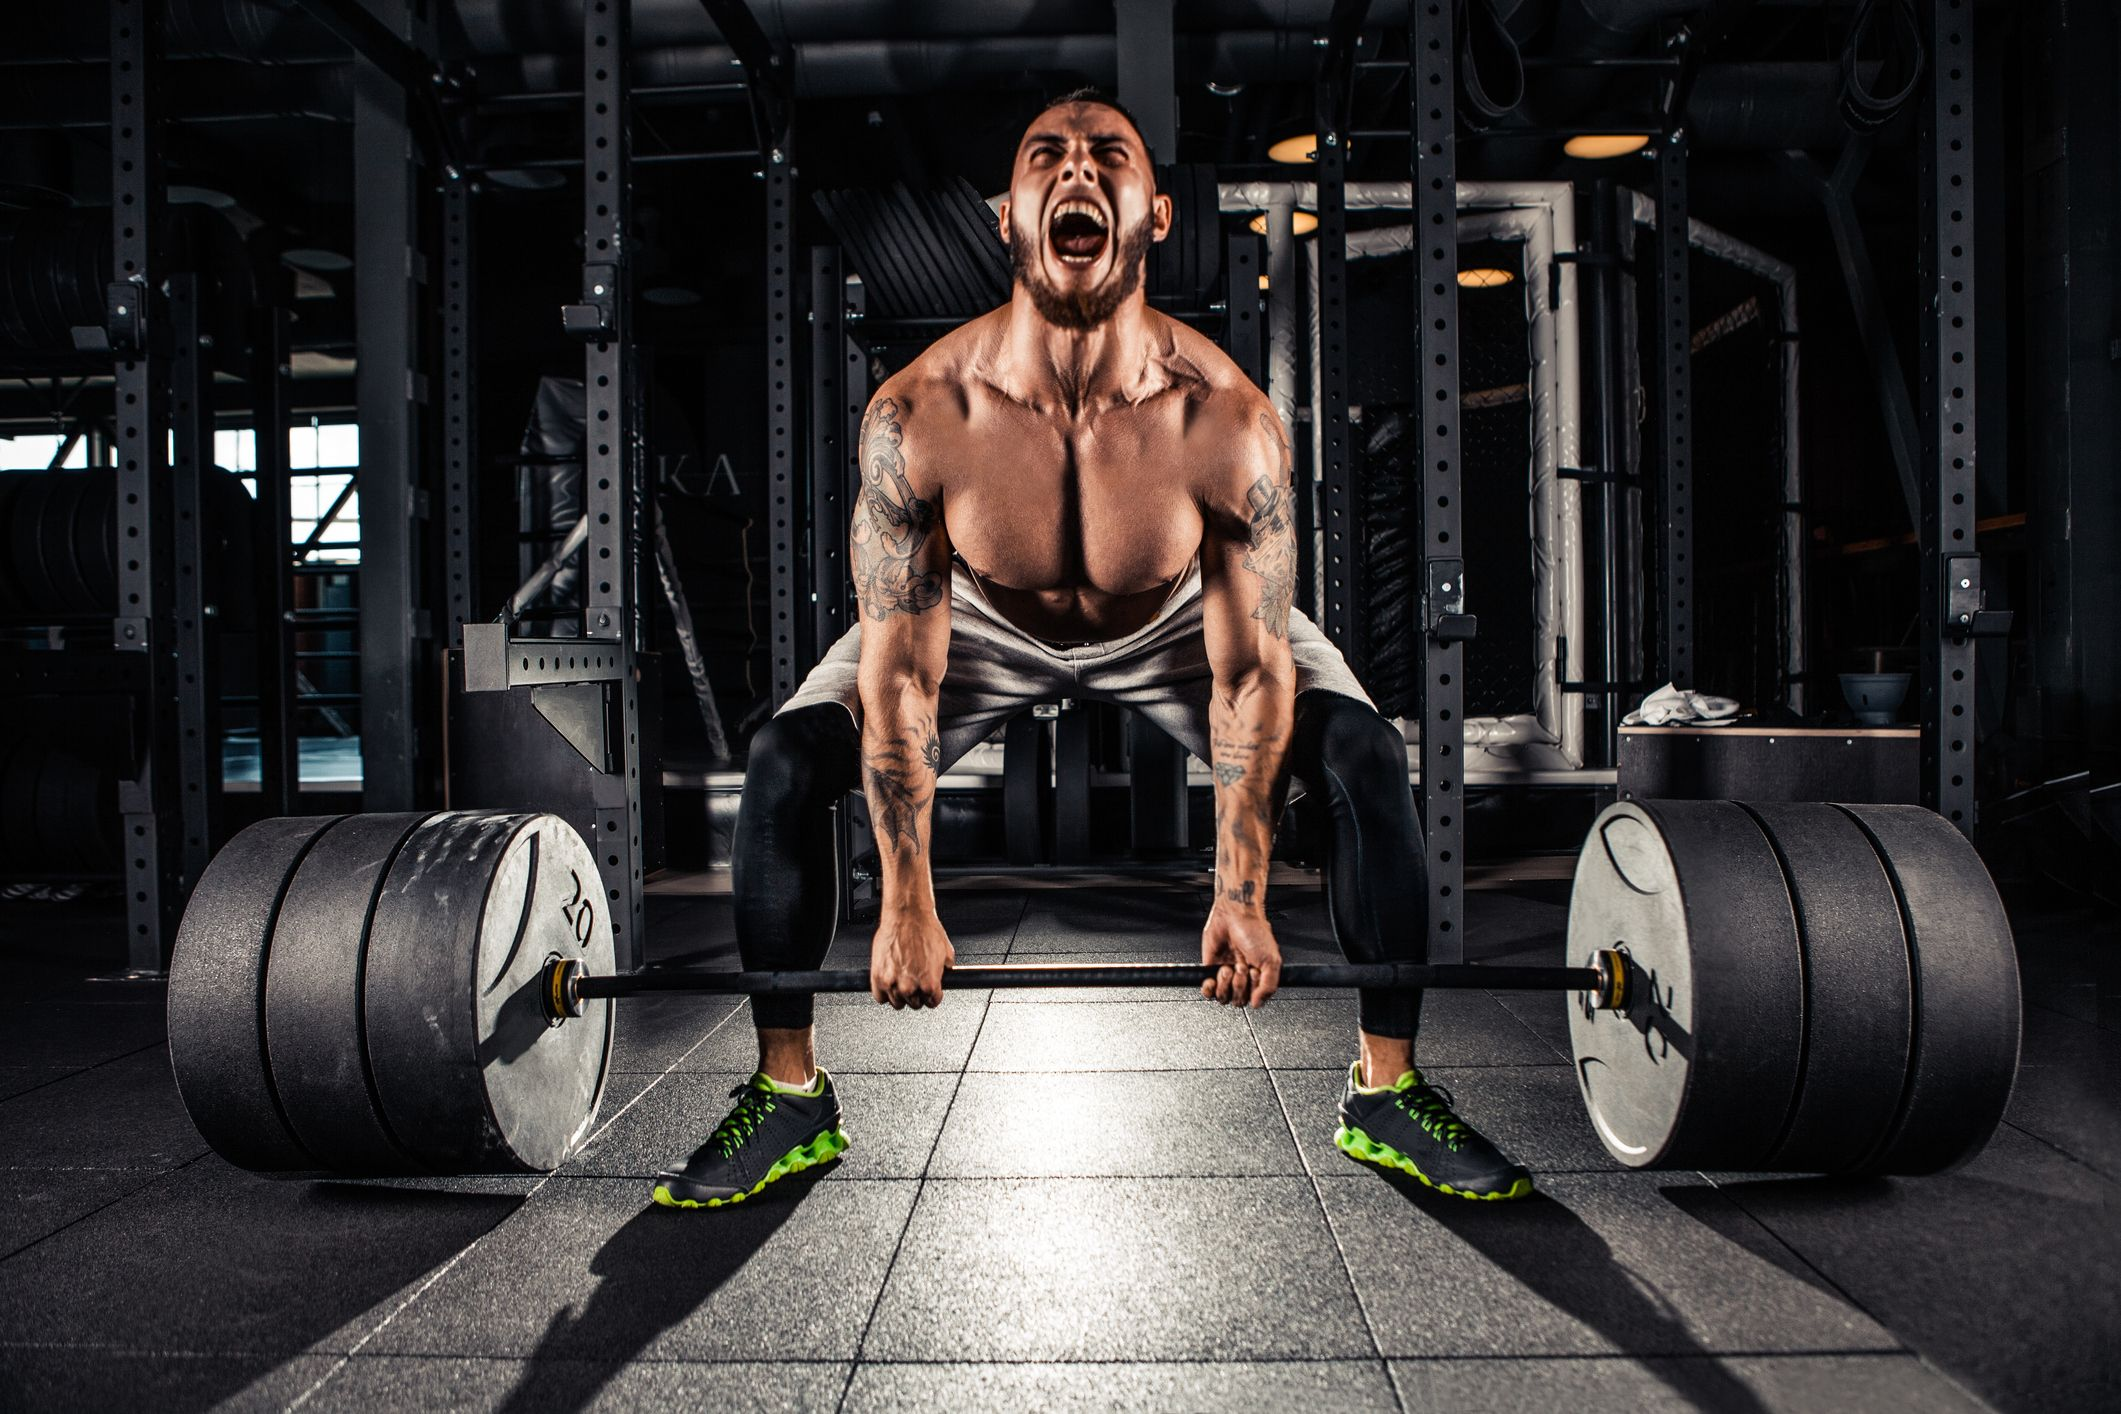 weight-lift-body-building-stock